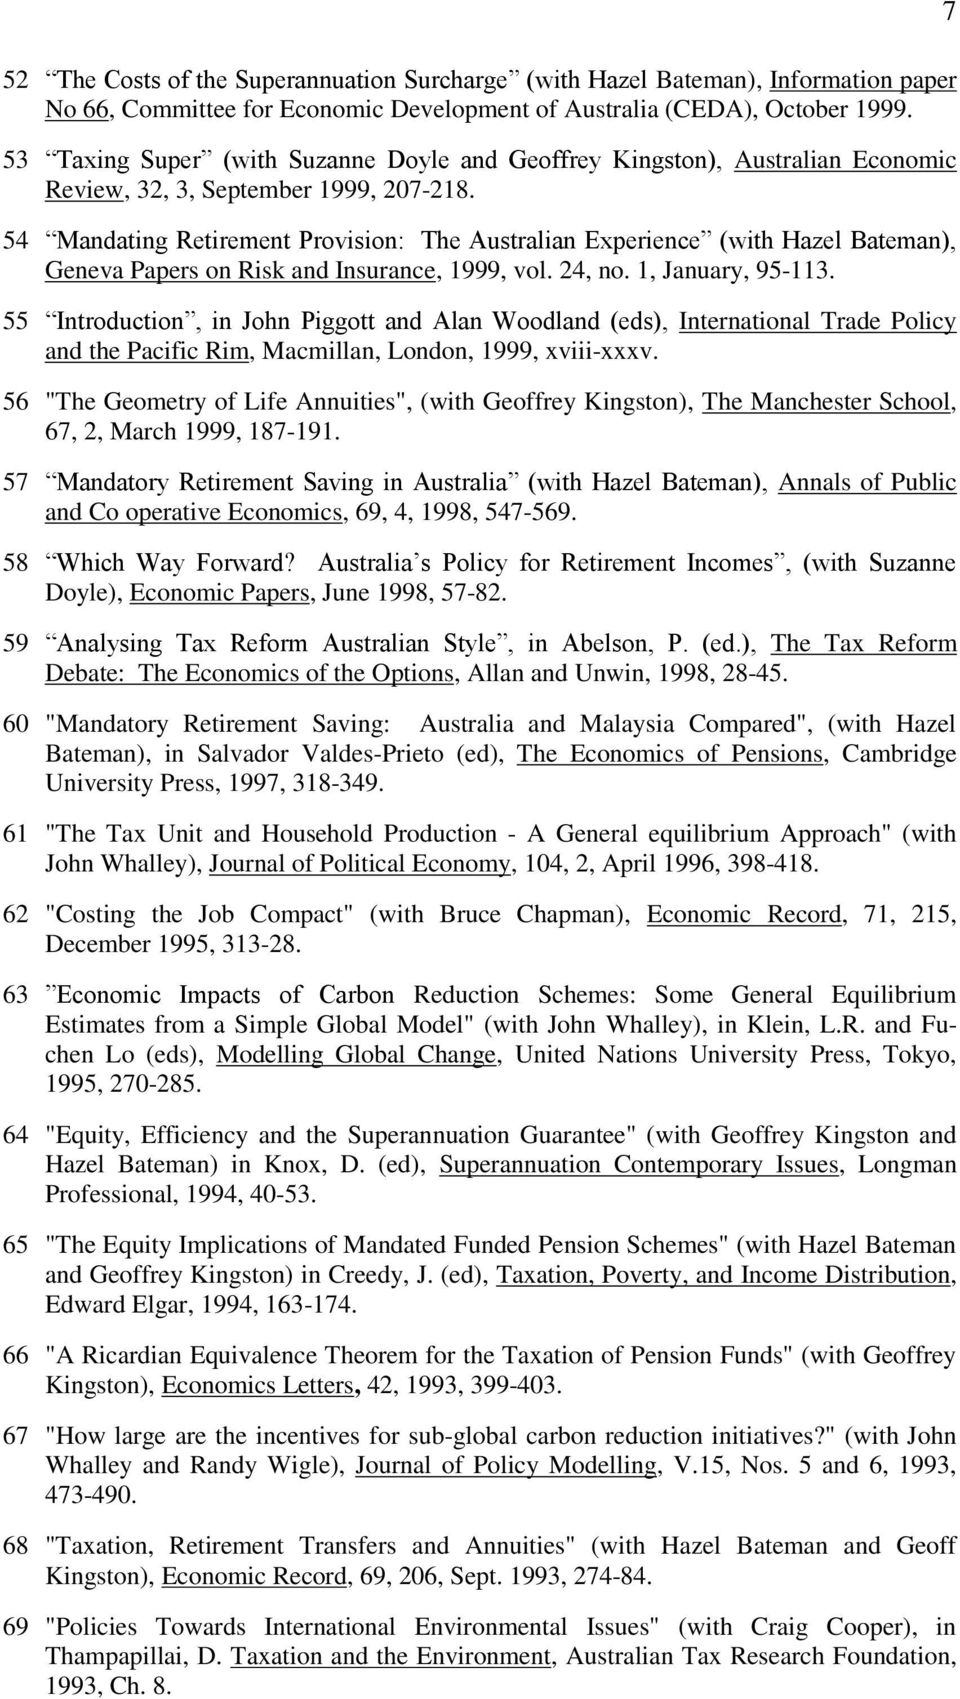 54 Mandating Retirement Provision: The Australian Experience (with Hazel Bateman), Geneva Papers on Risk and Insurance, 1999, vol. 24, no. 1, January, 95-113.